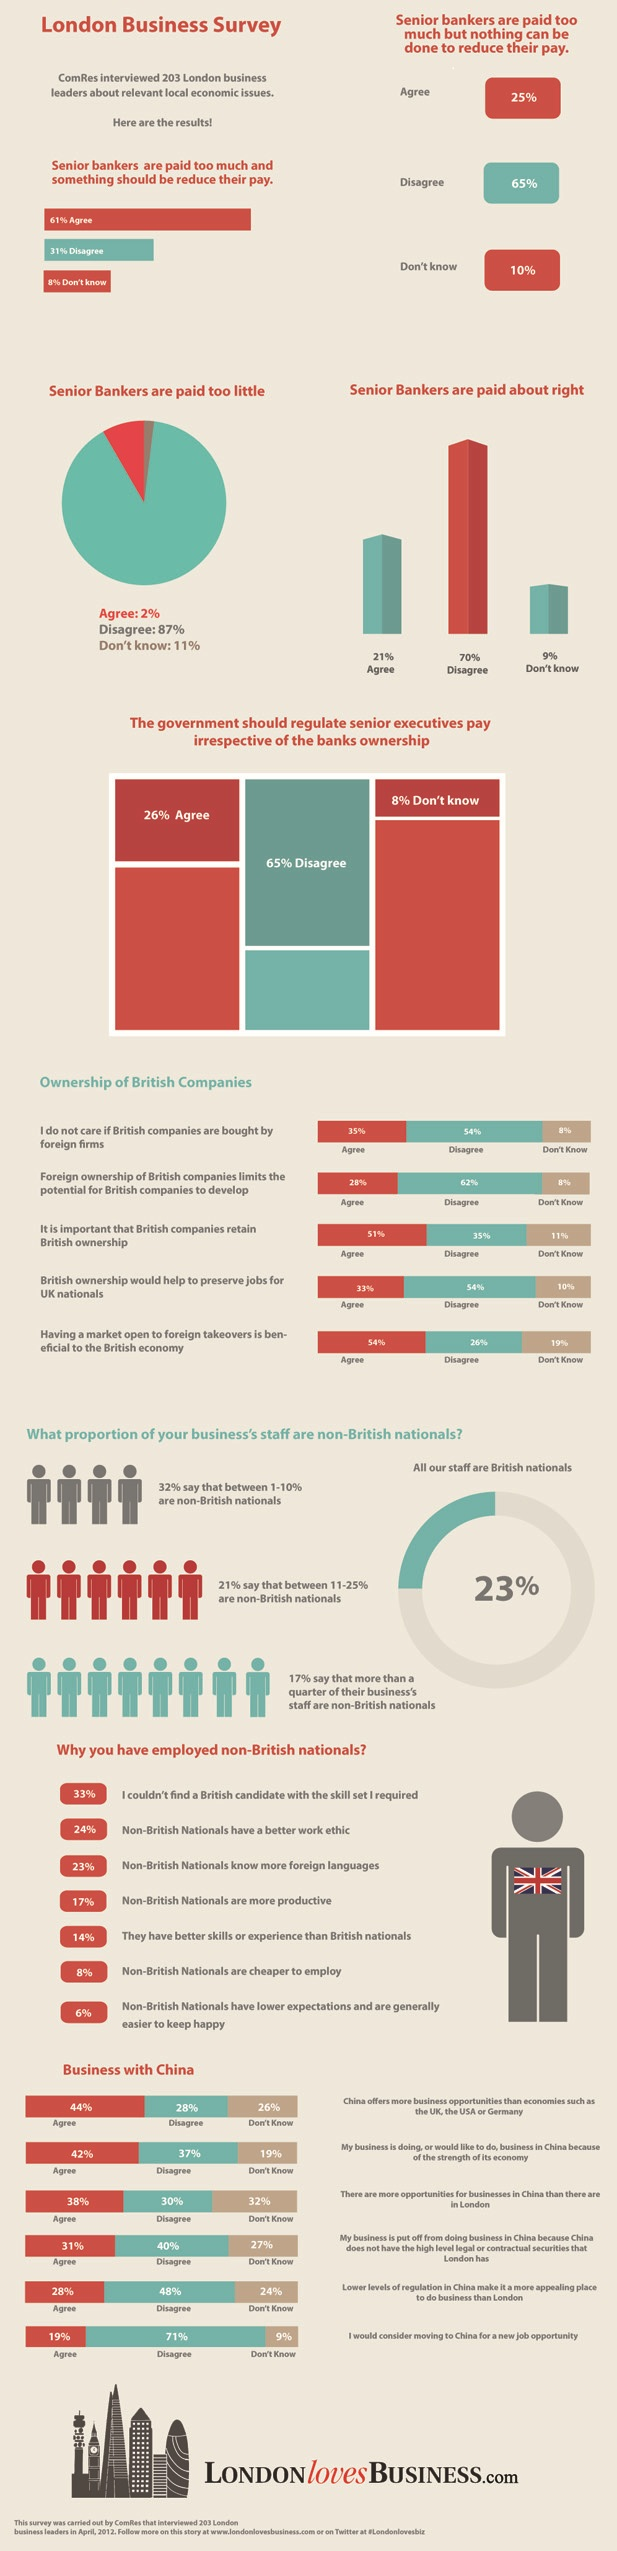 London Business Survey 2012